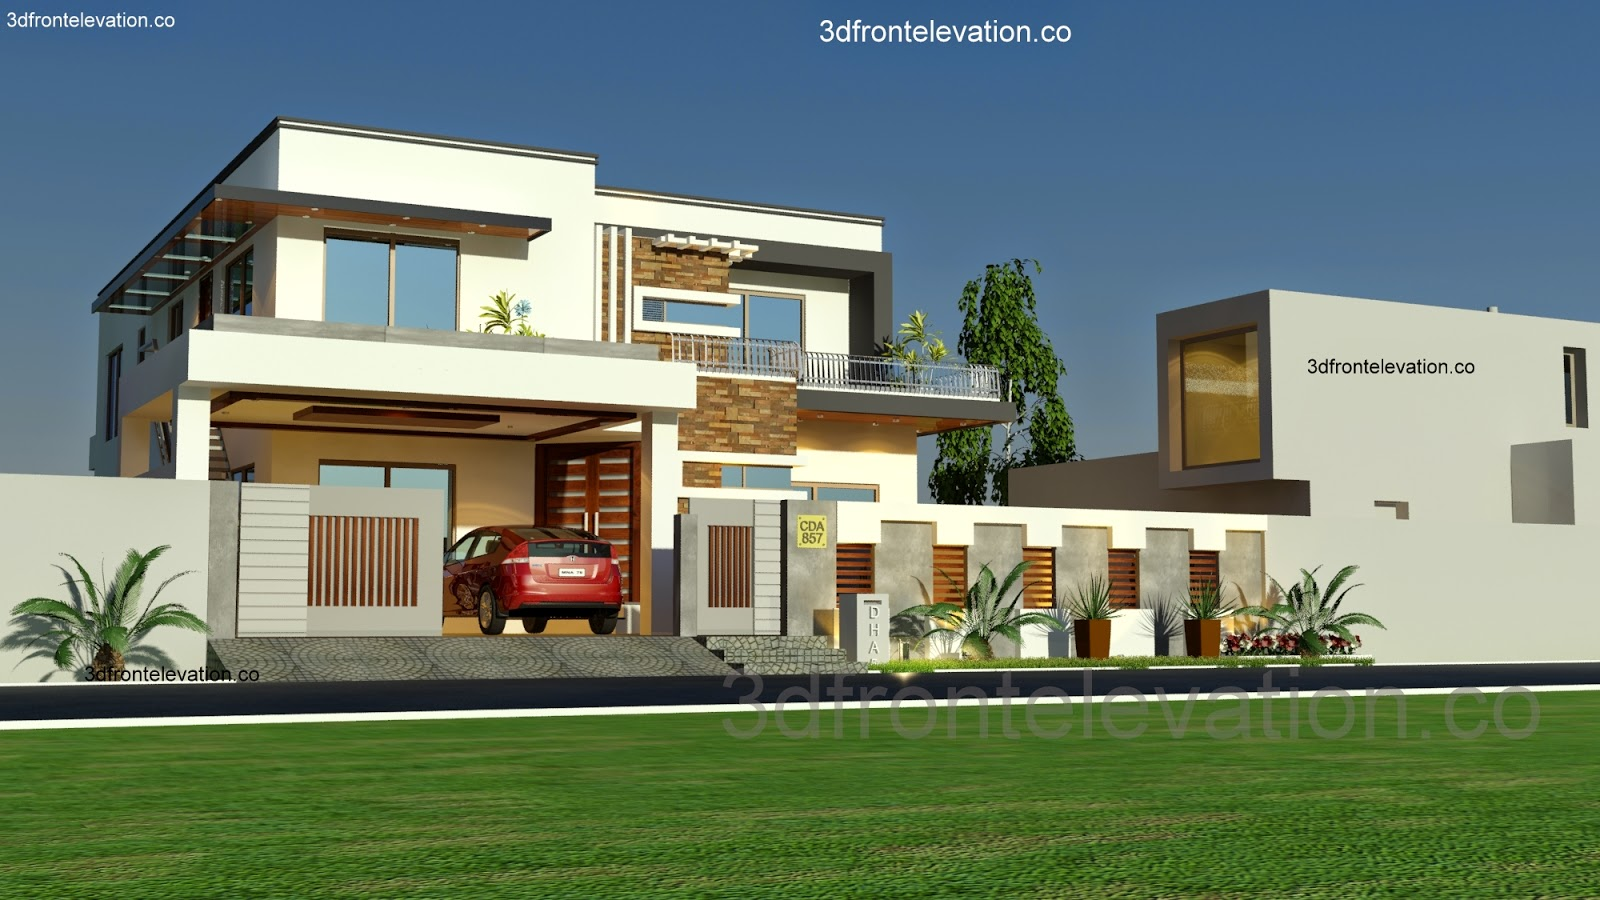 House plans and design modern duplex house plans canada for Duplex home plan design